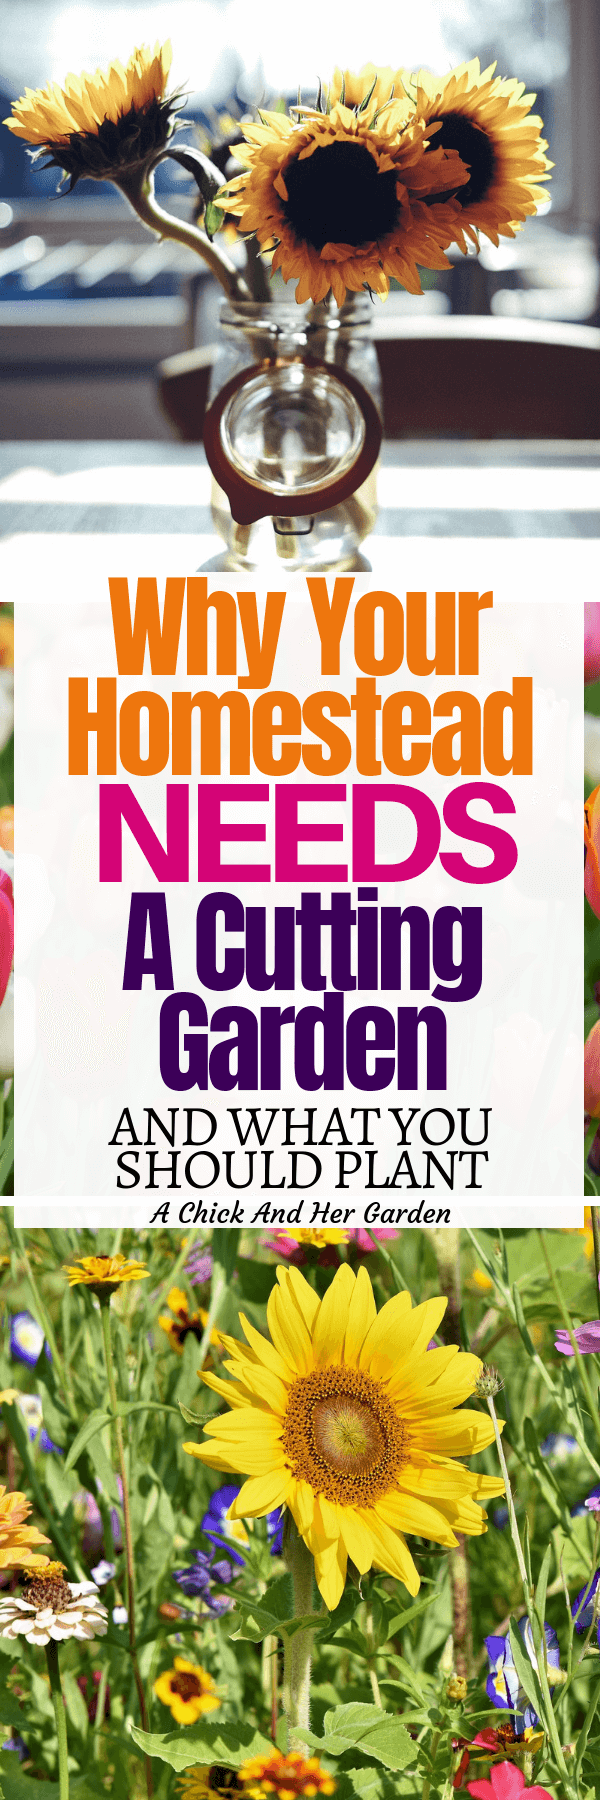 Every homestead needs a cutting garden! It's easy to forget about flowers when you've got chickens to feed, bedding to change, cabbage worms in the vegetable garden. This is the perfect list of why you should take time for flowers! #cuttingflowers #cuttinggarden #freshcutflowers #homesteadgarden #achickandhergarden